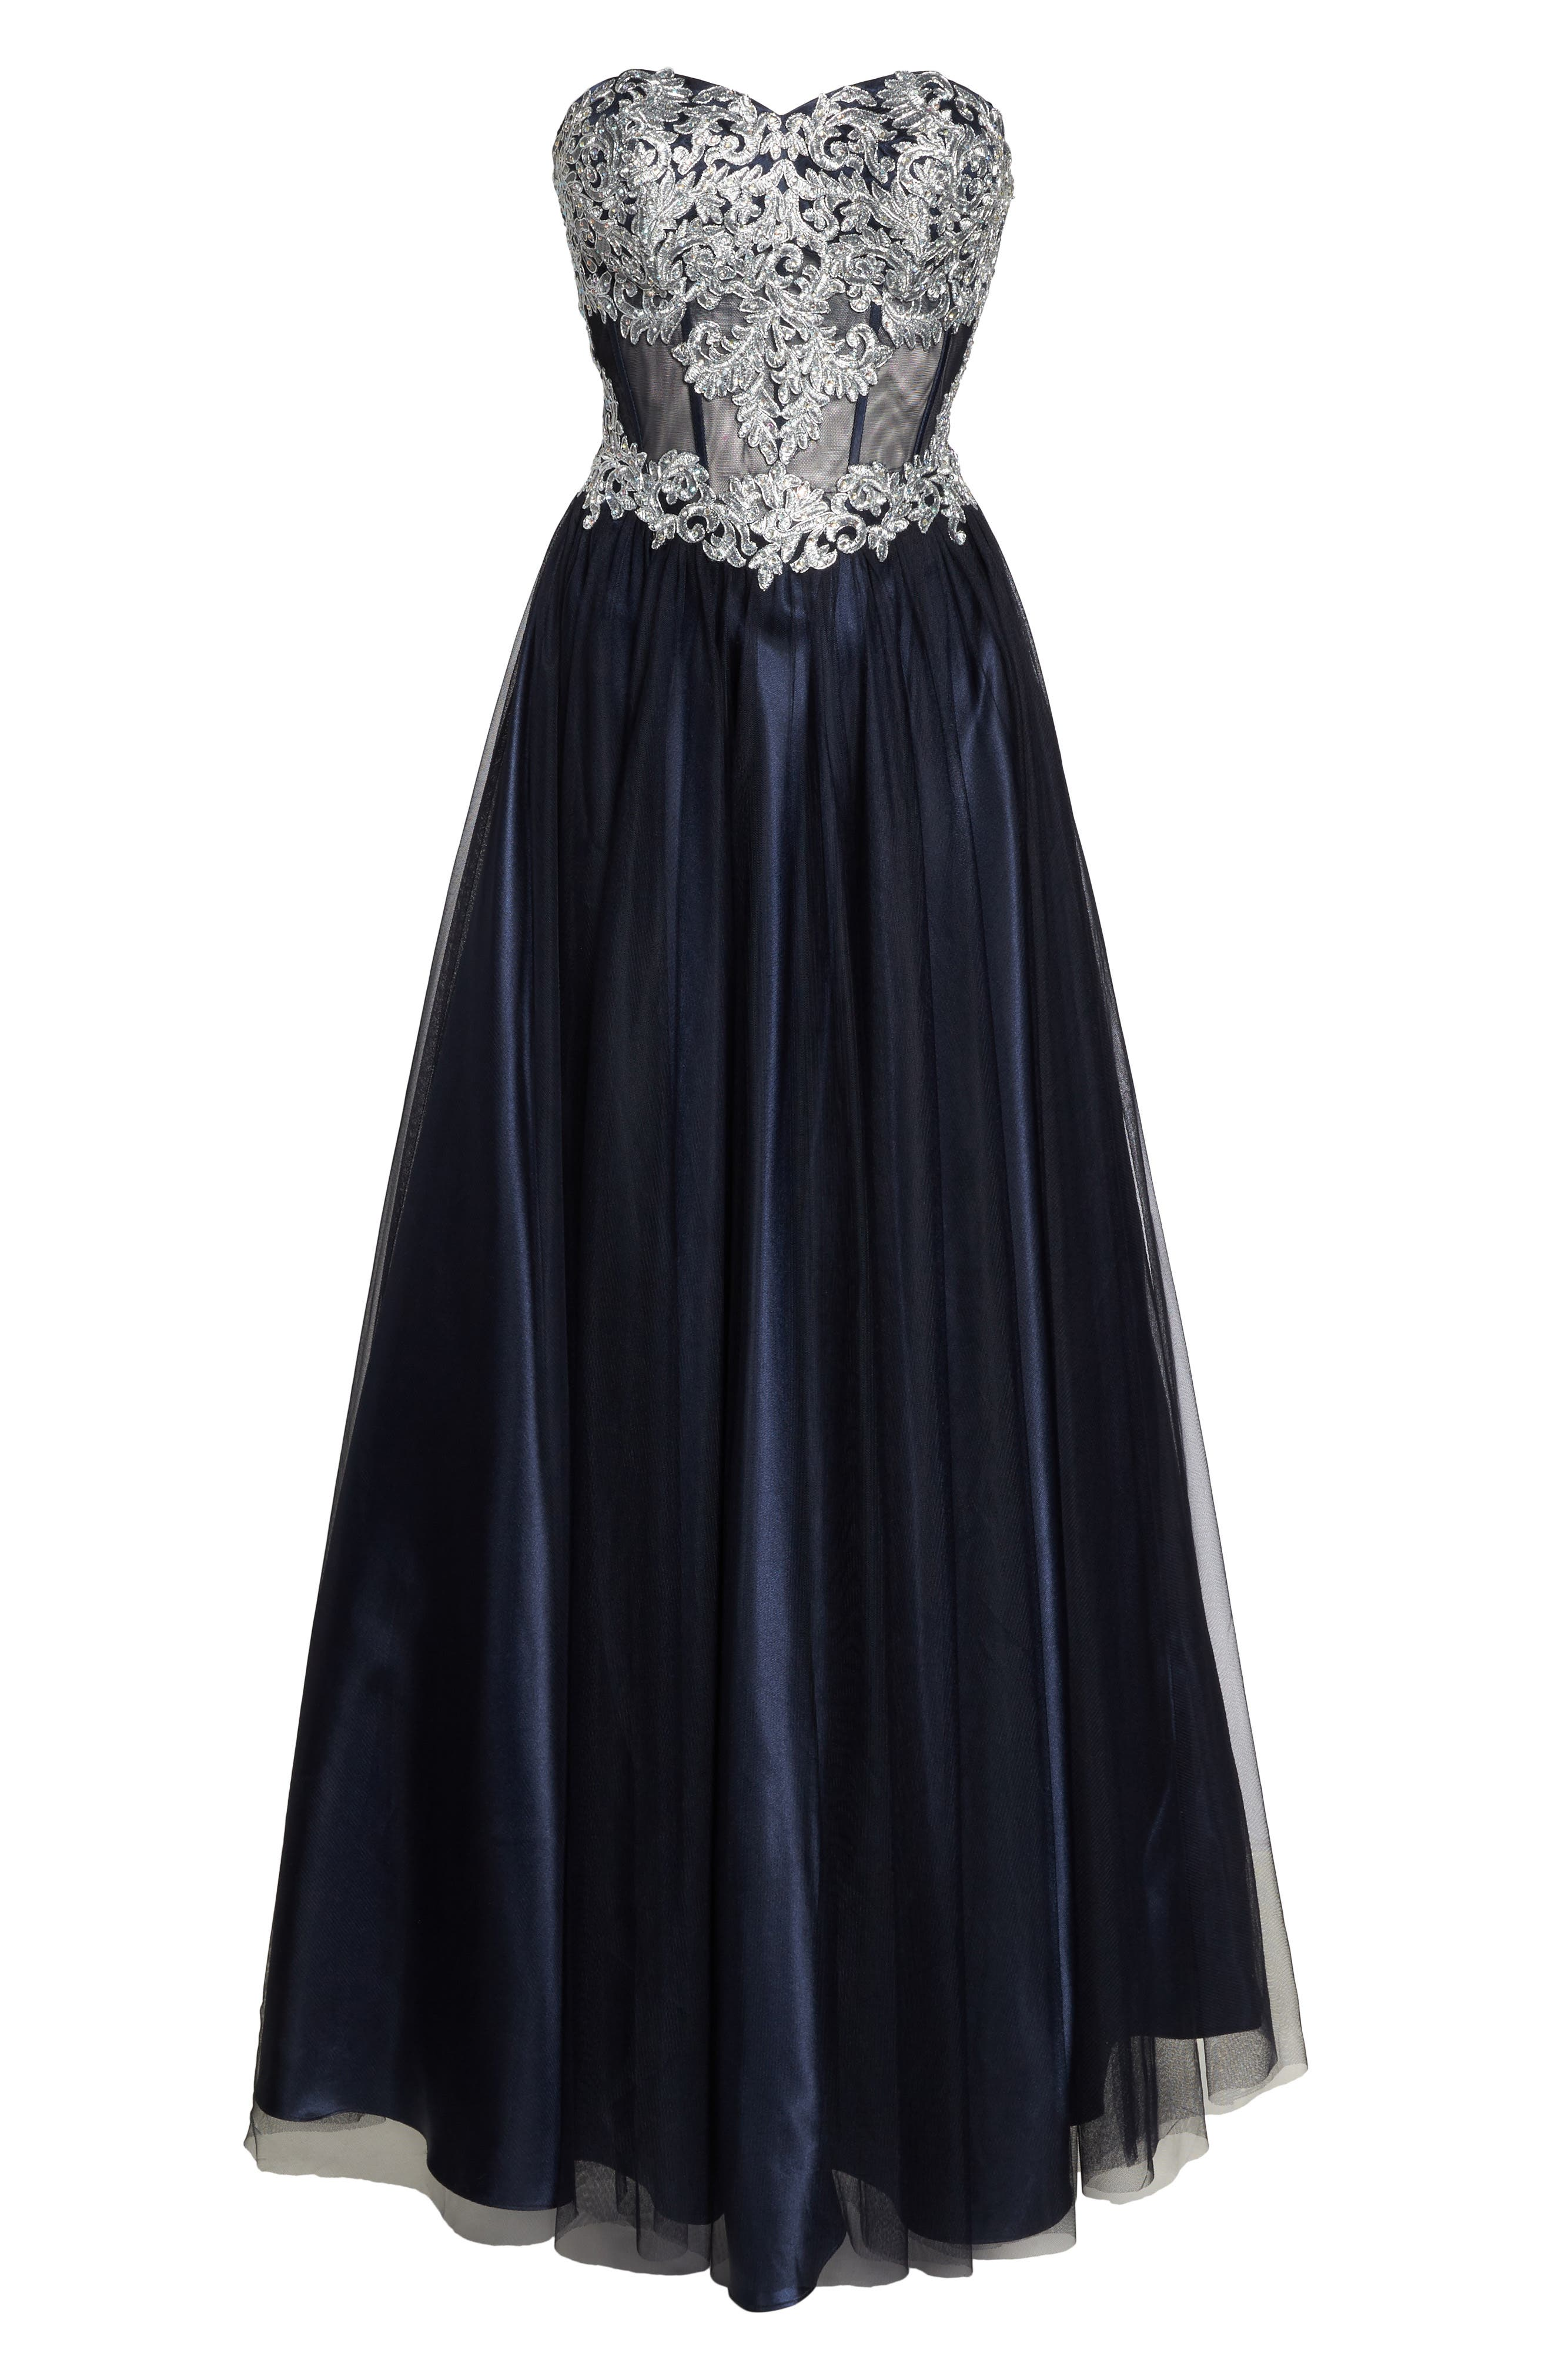 Embellished Corset Ballgown,                             Alternate thumbnail 6, color,                             Navy/ Silver